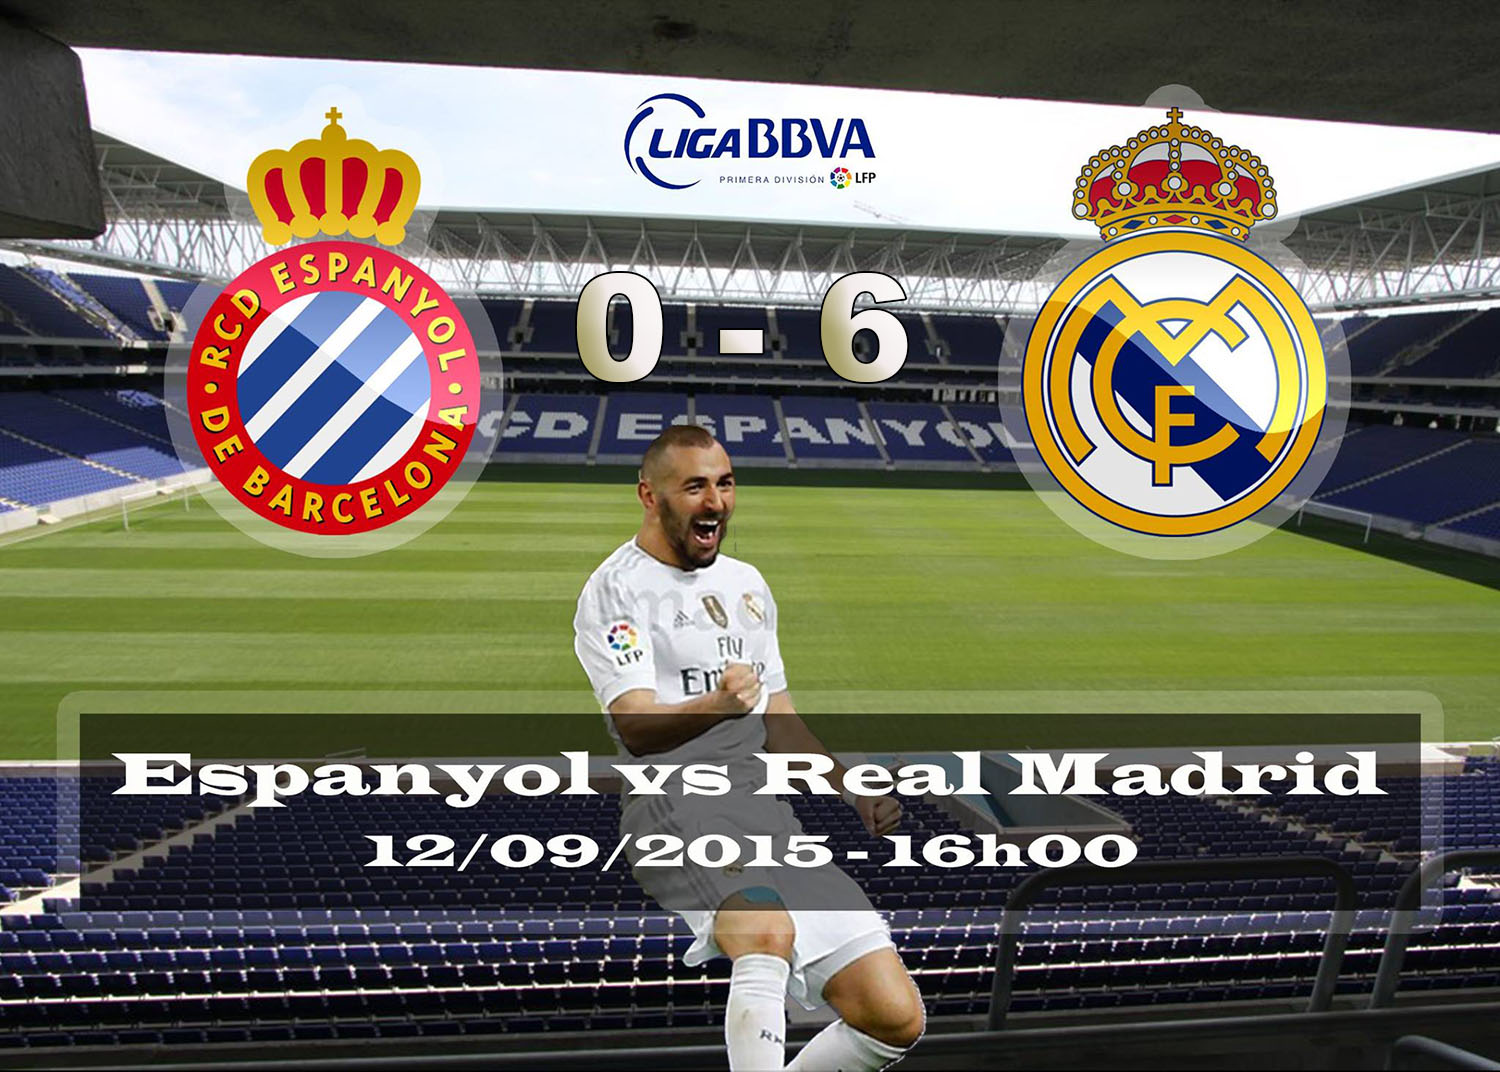 Real madrid tv espanyol 0 6 real madrid for Real madrid tv